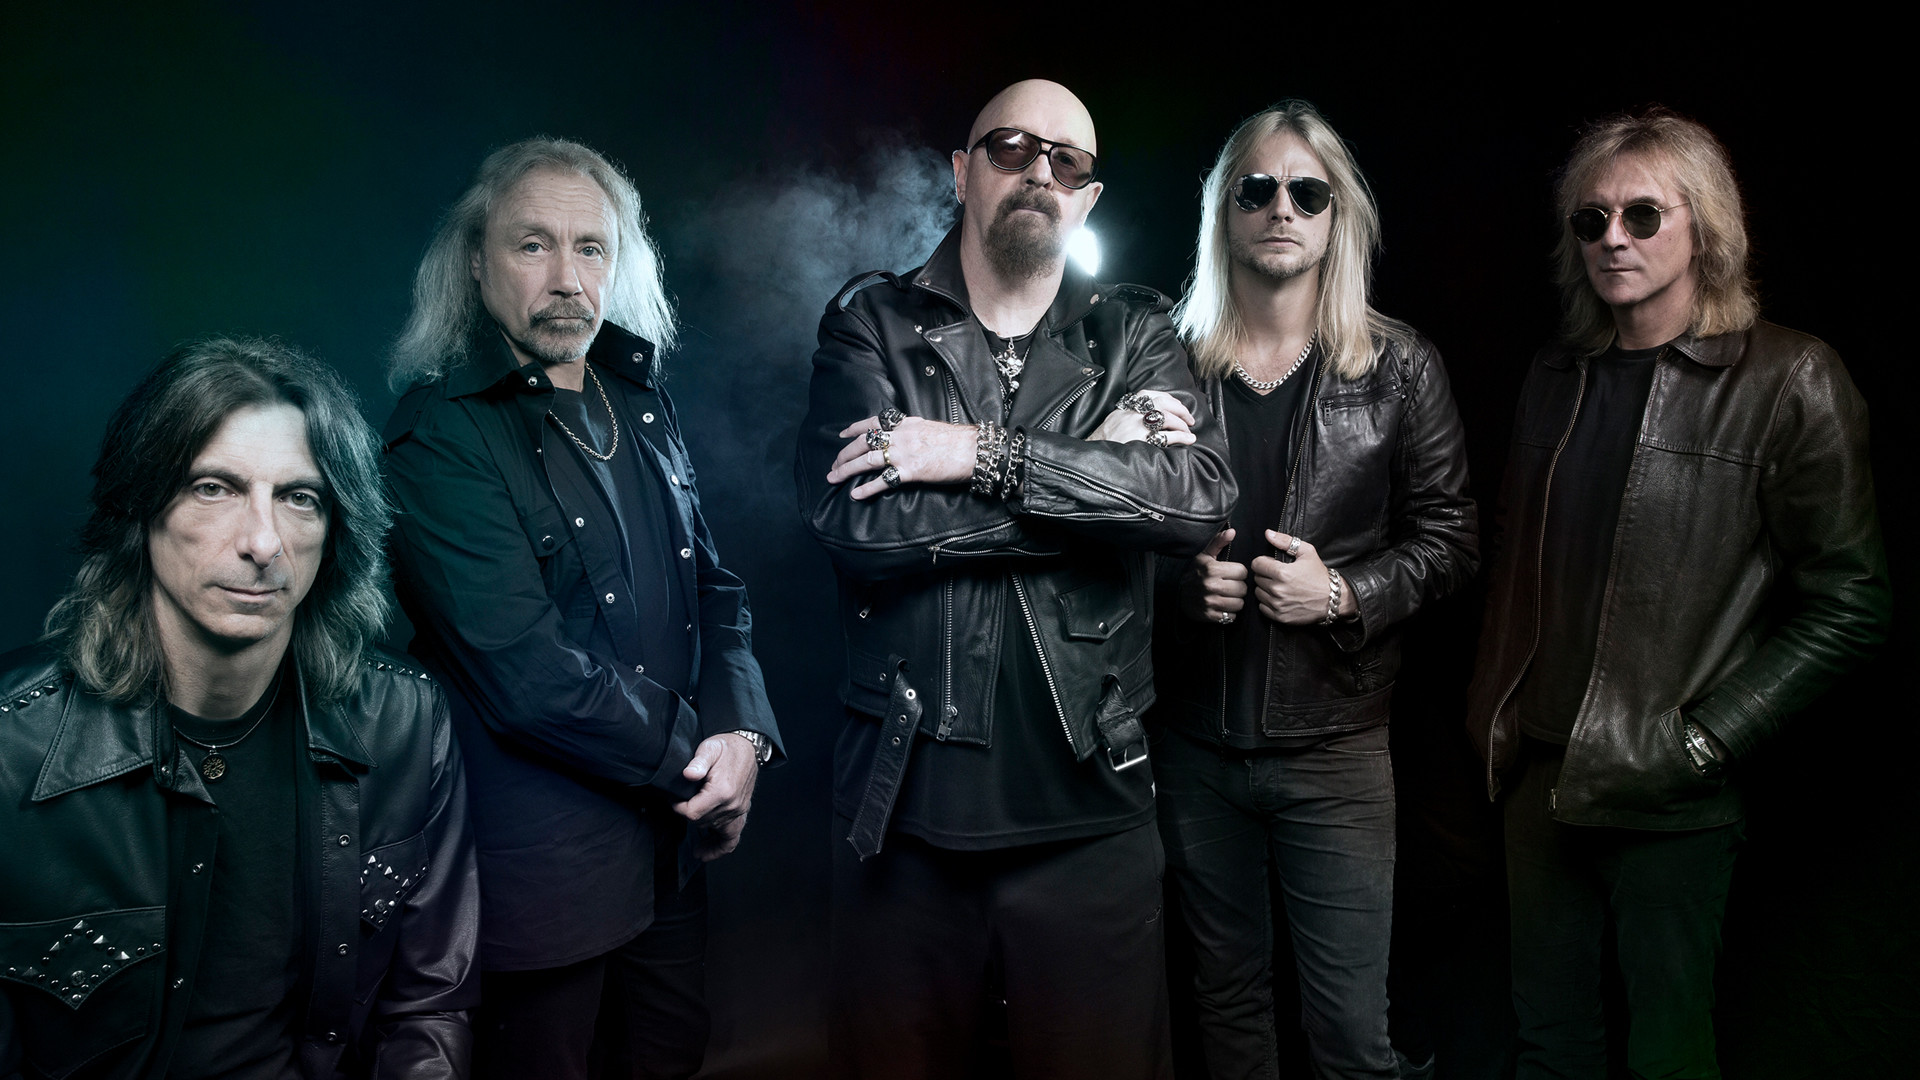 Judas Priest © Barracuda Music